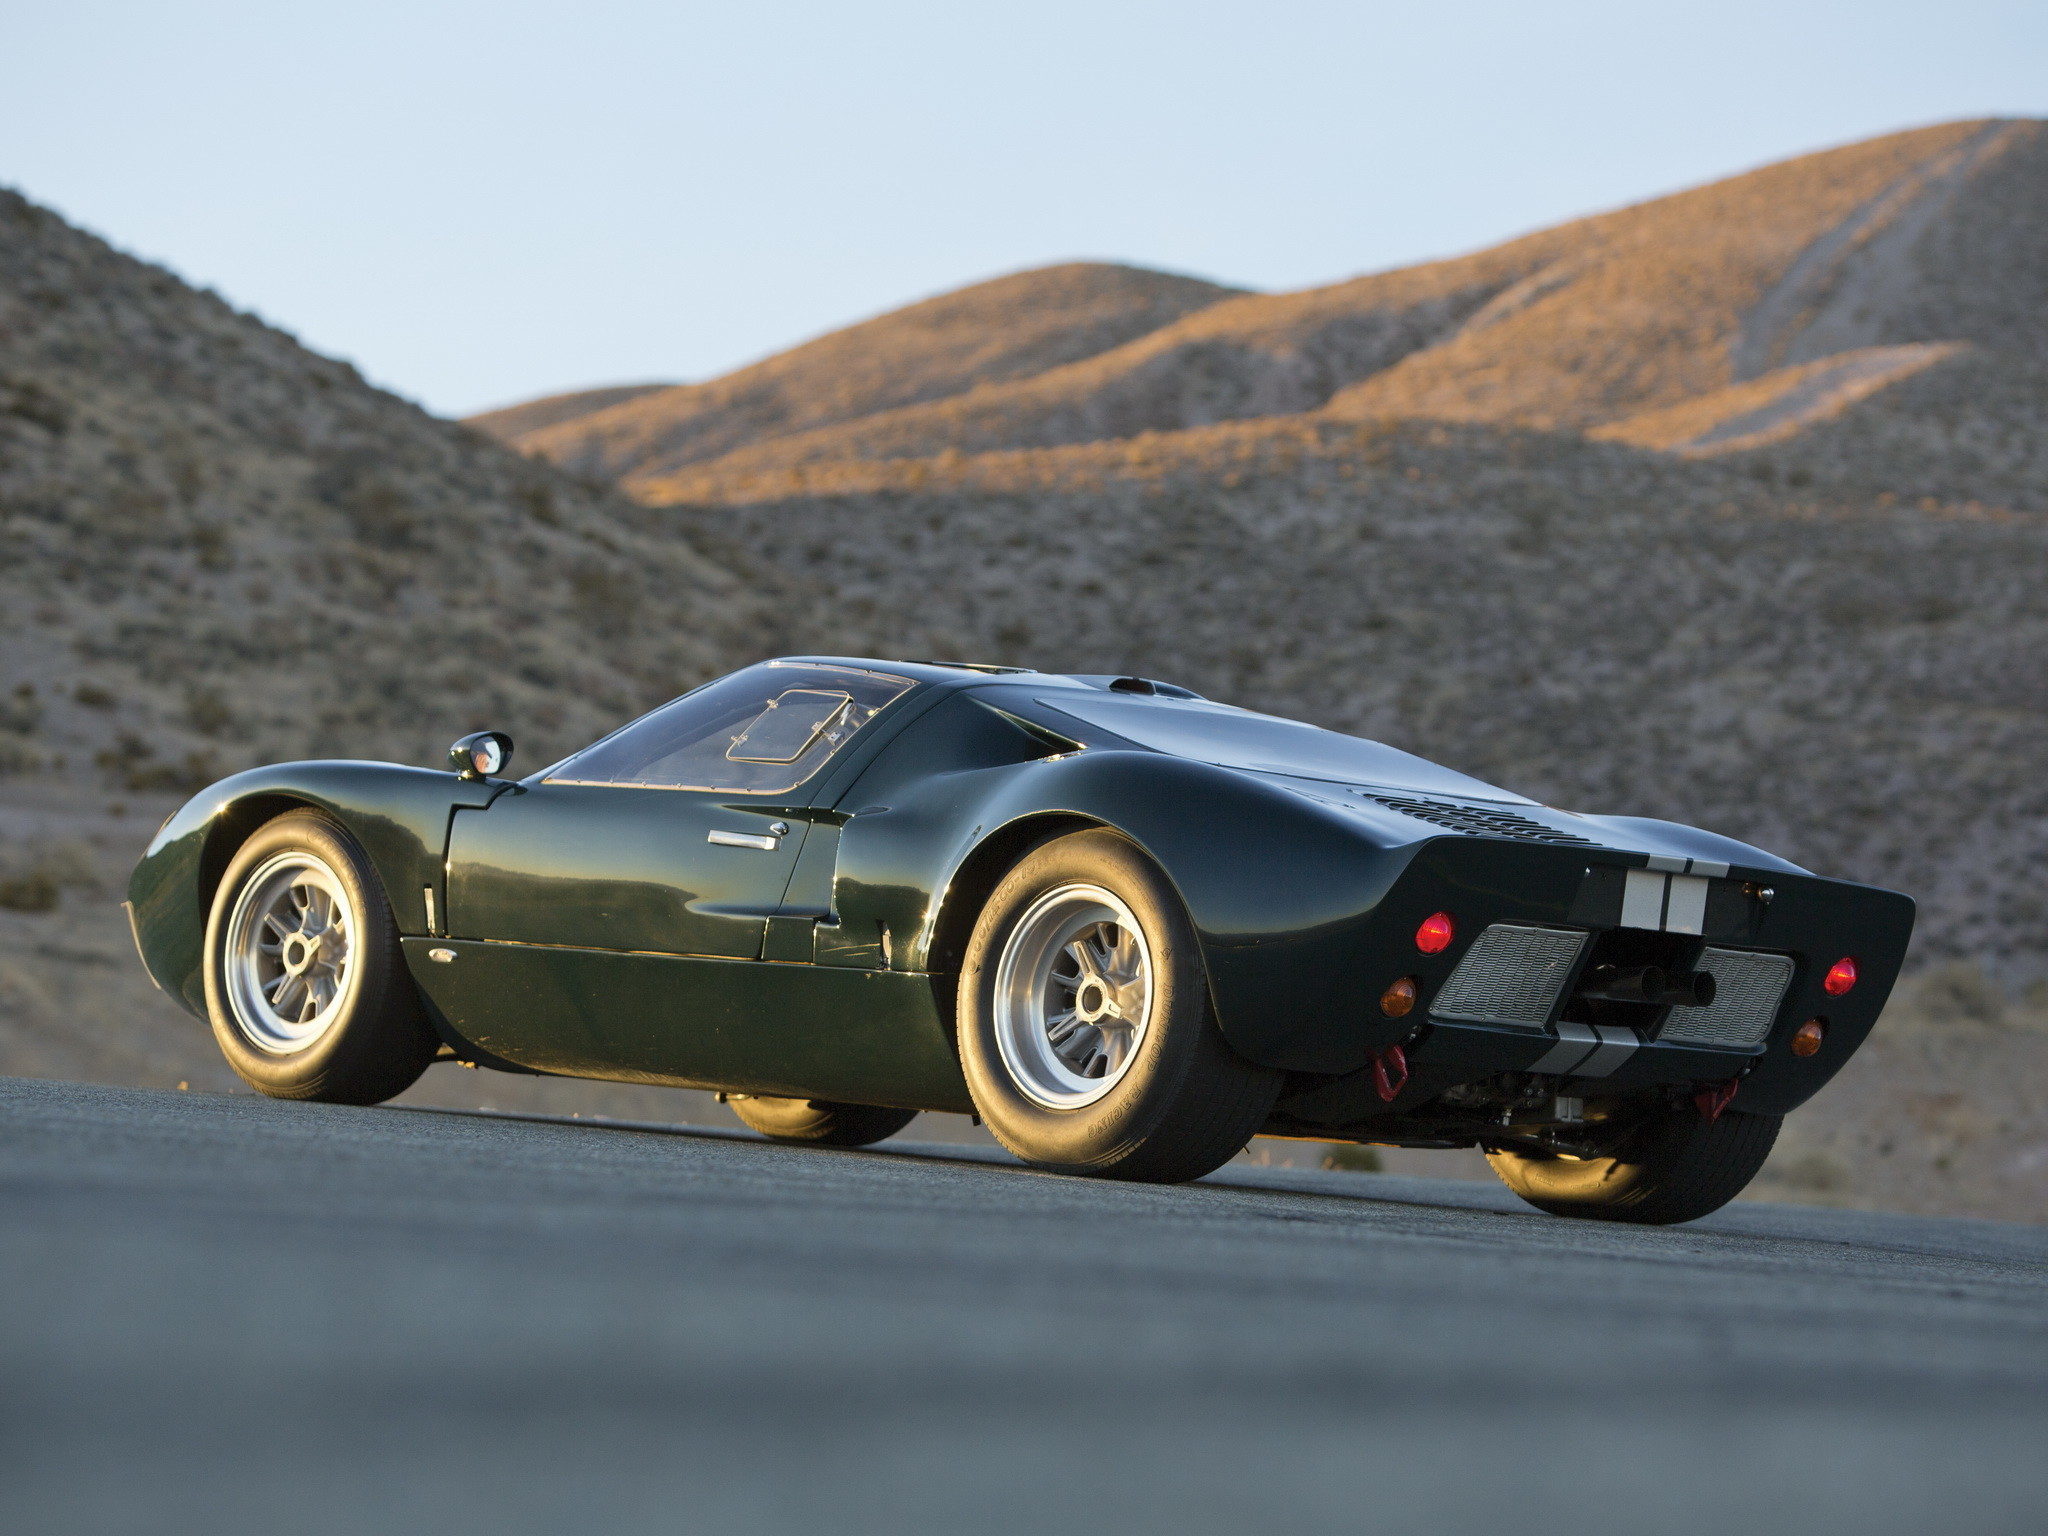 Res: 2048x1536, ford gt40 wallpaper 1965 Ford GT40 MkII supercar race racing classic g-t d  wallpaper  147586